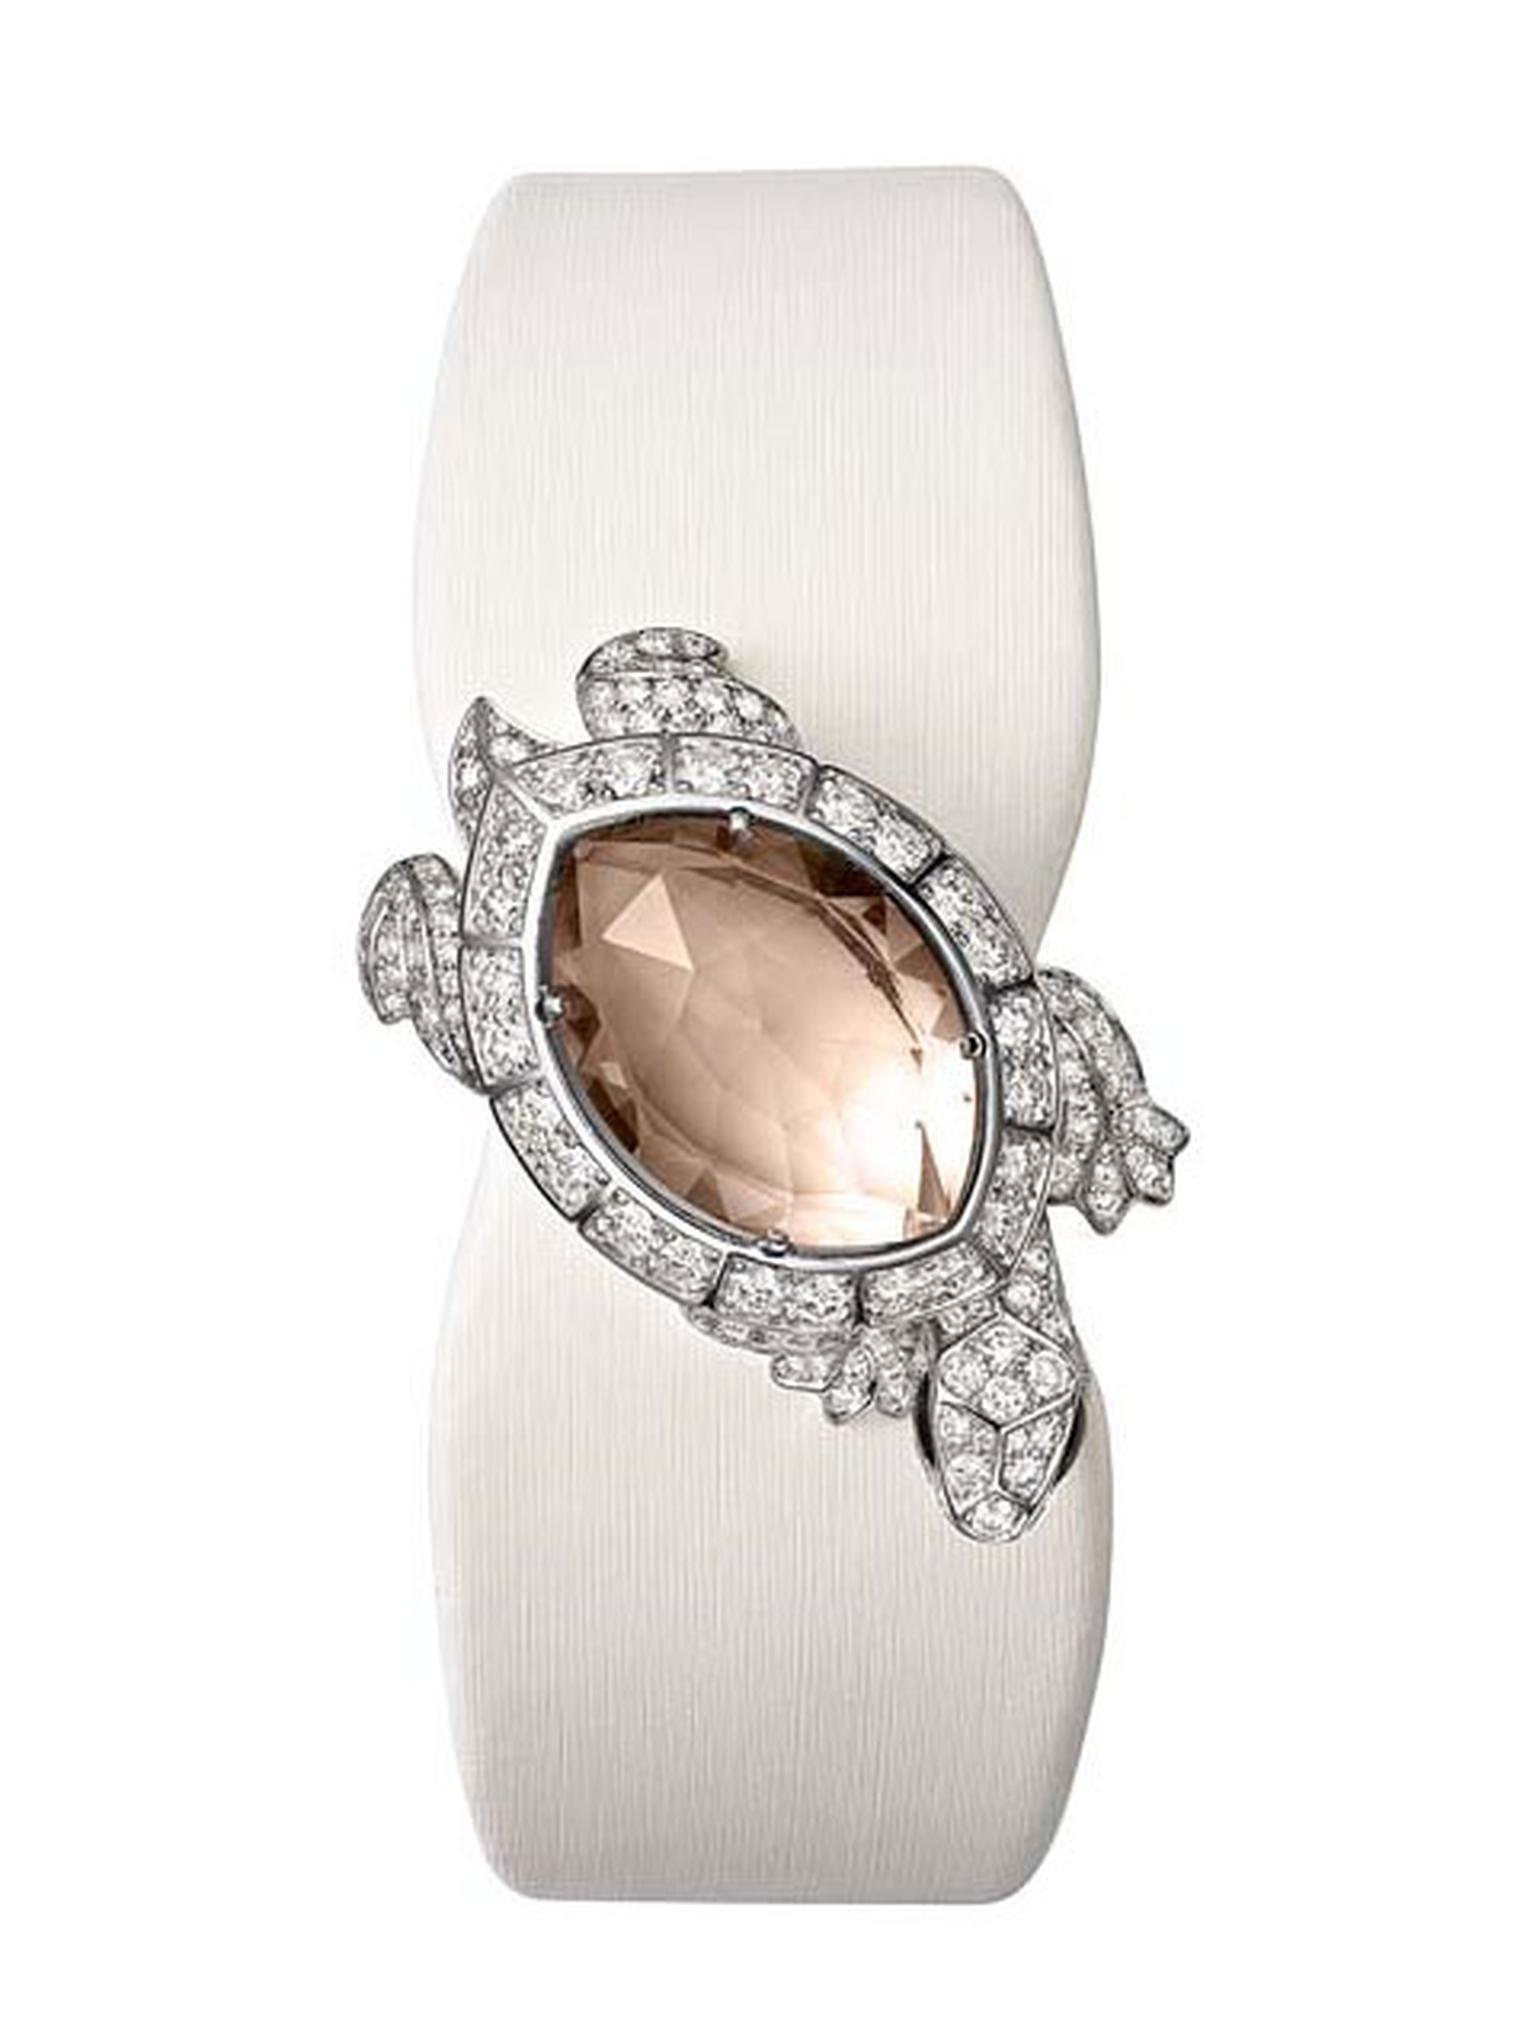 Cartier_Fabuleux_TORTOISE_MORGANITE_1